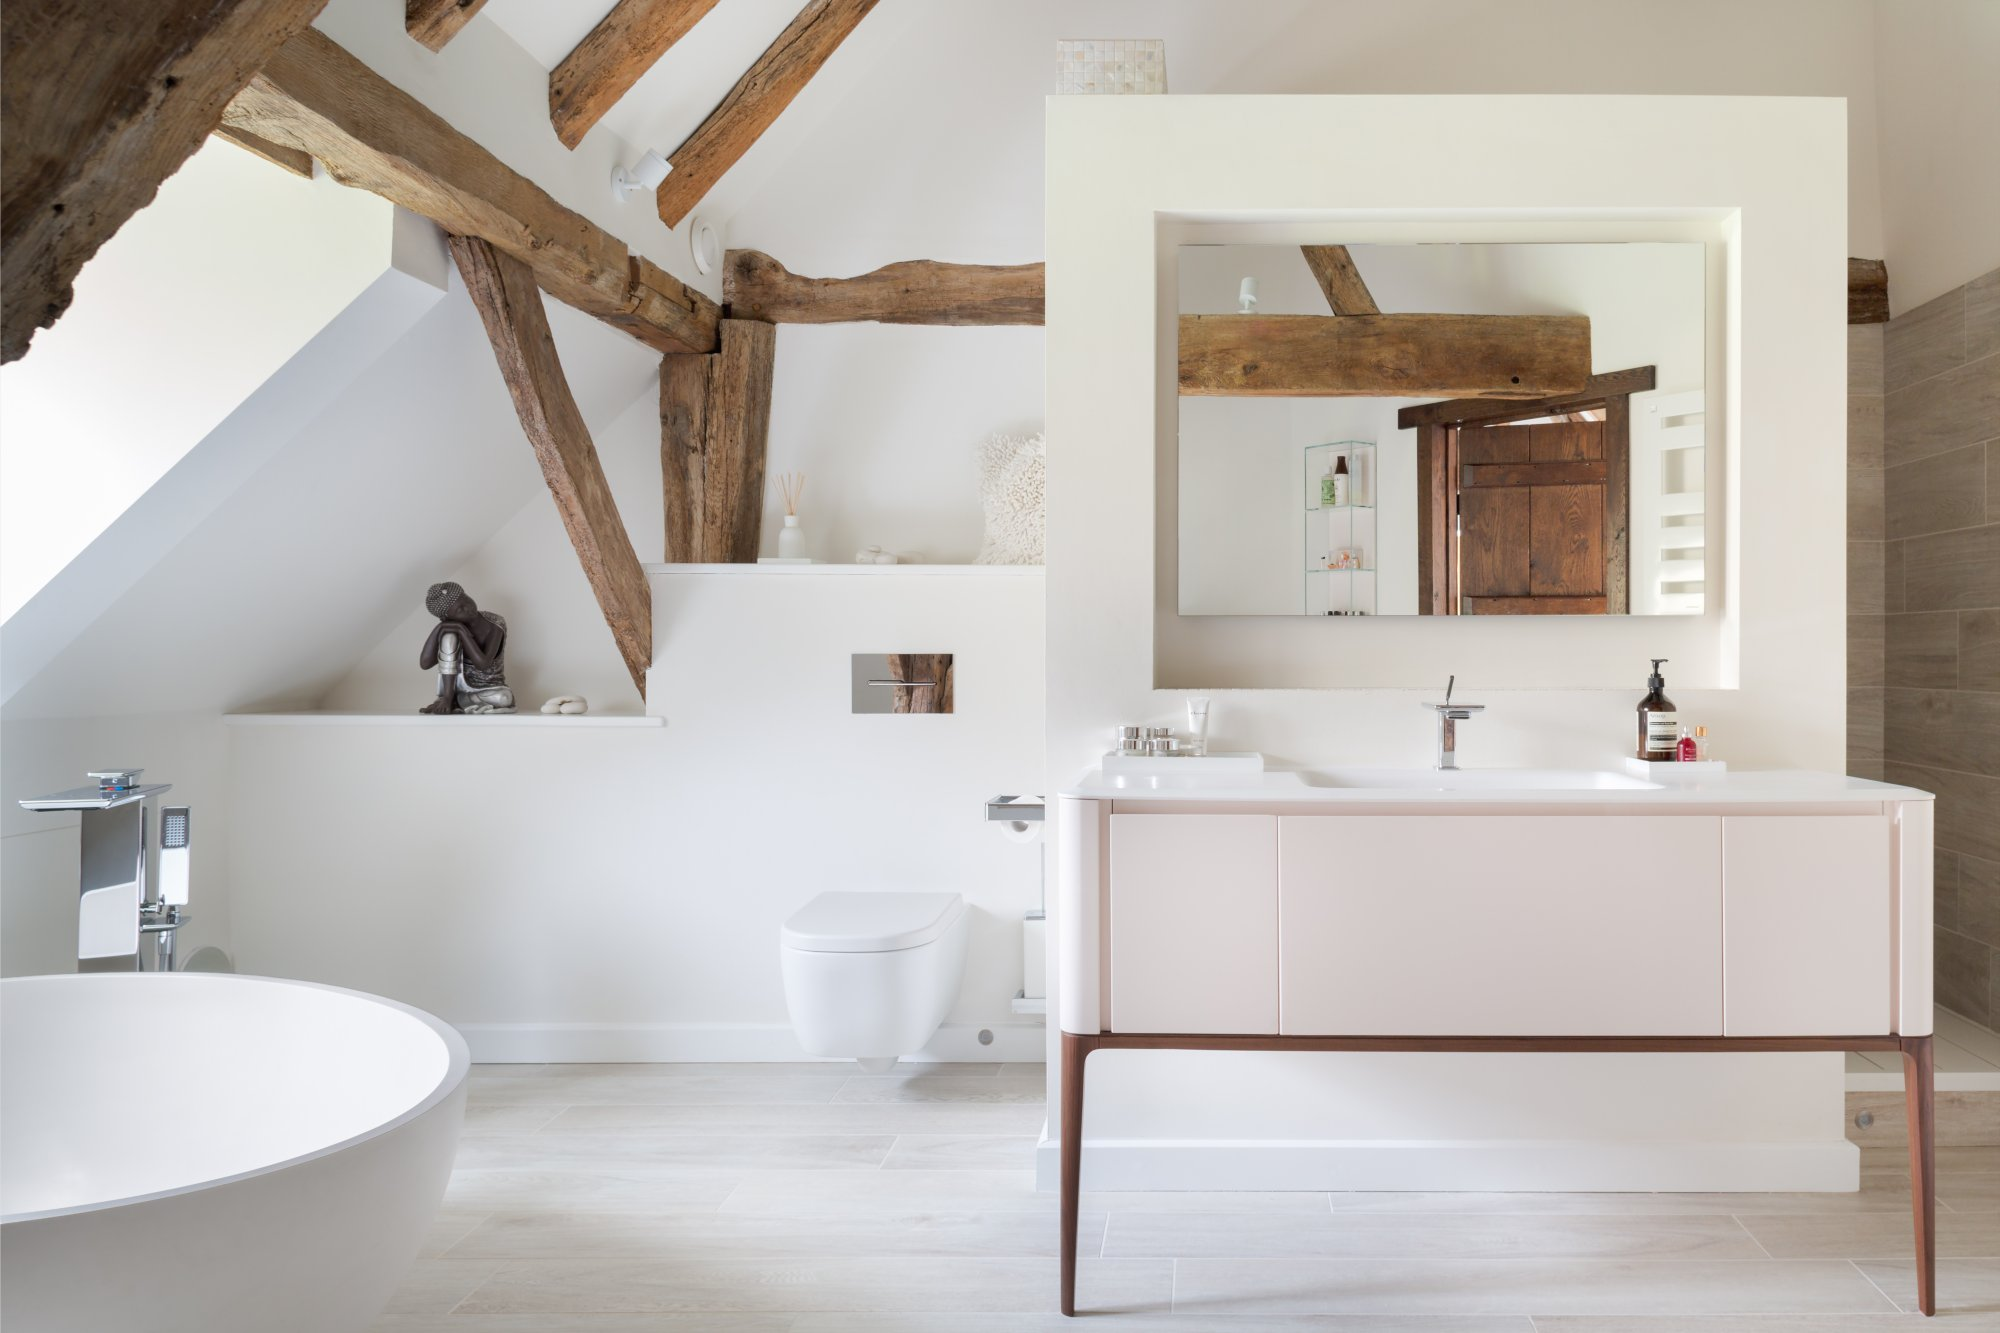 Top 5 Bathroom Trends Right Now